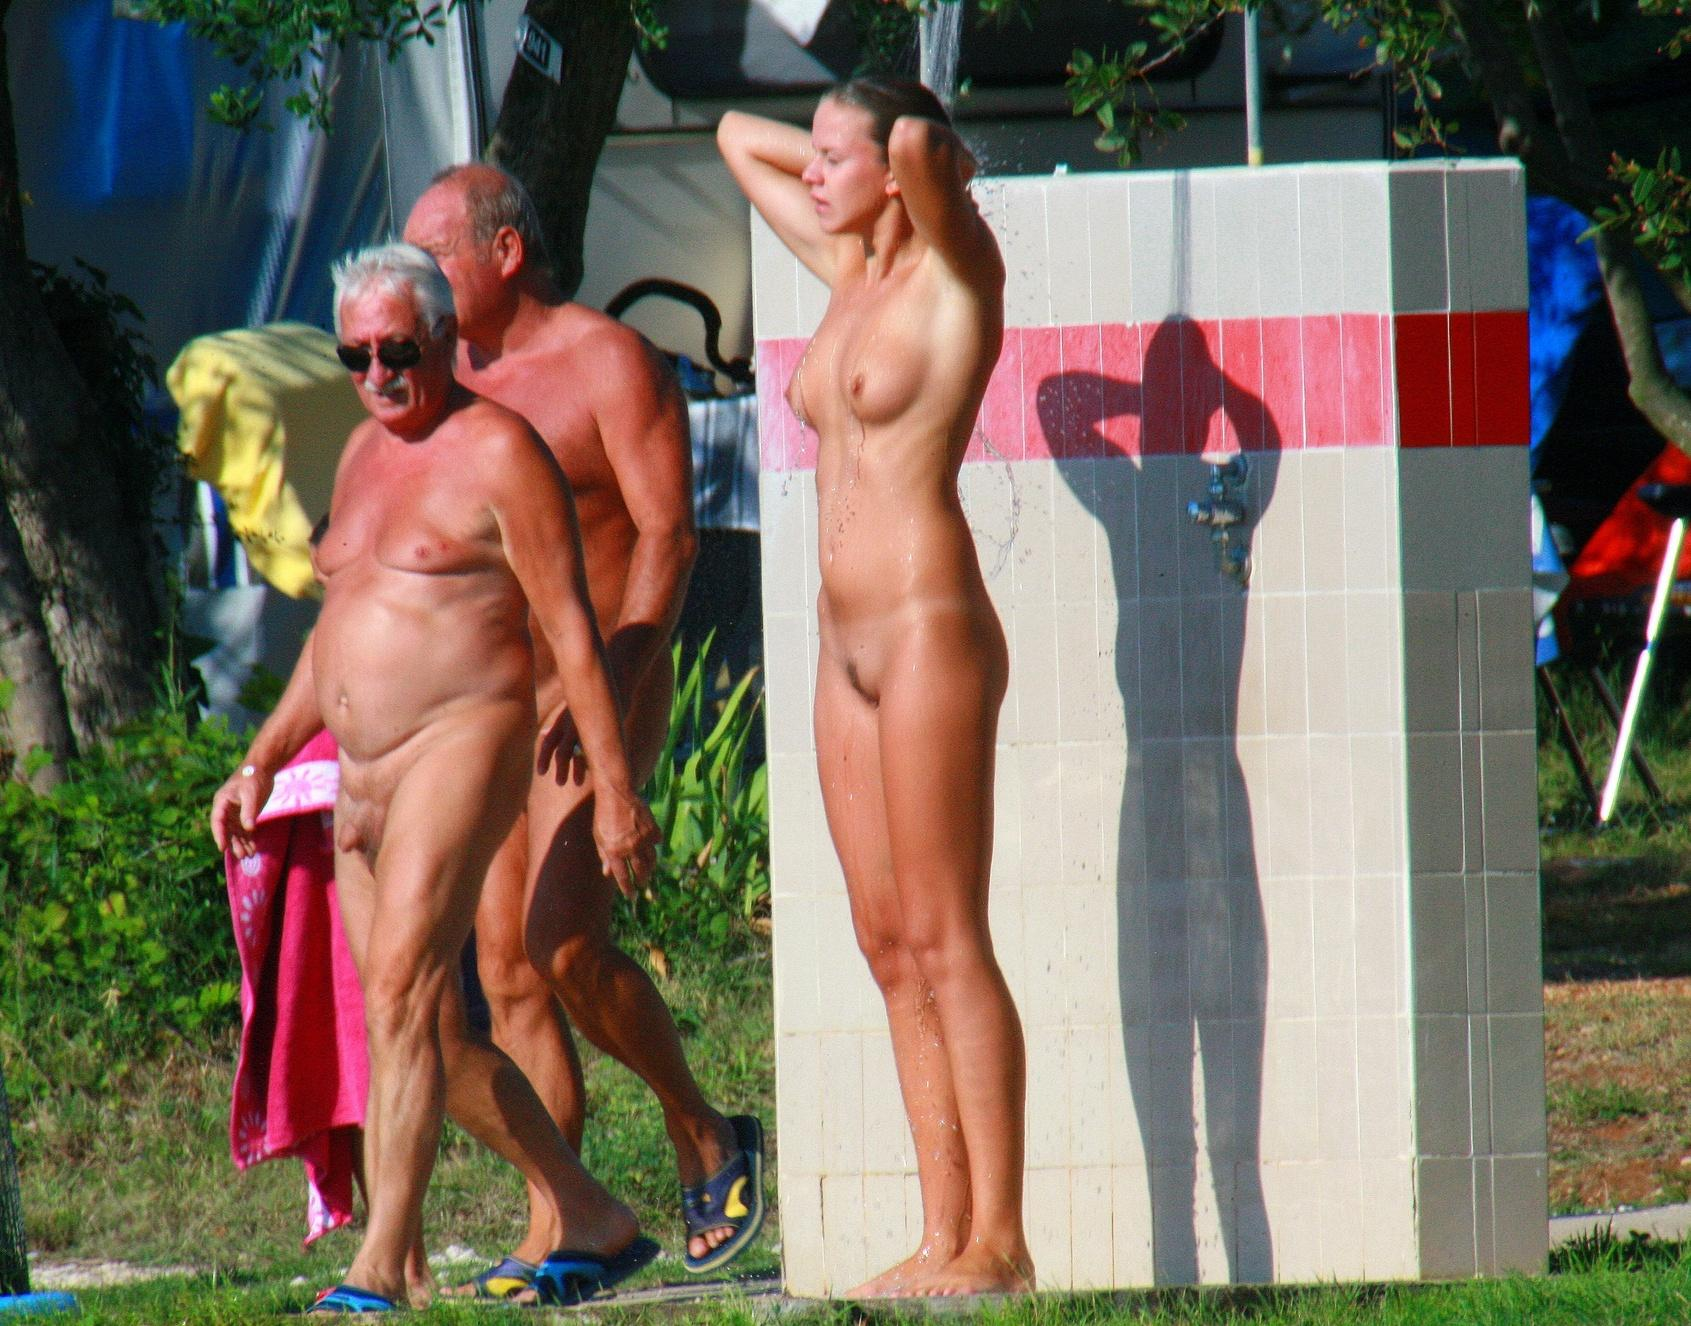 Naked gramps spoil perfect shower photo of hot pretty chick